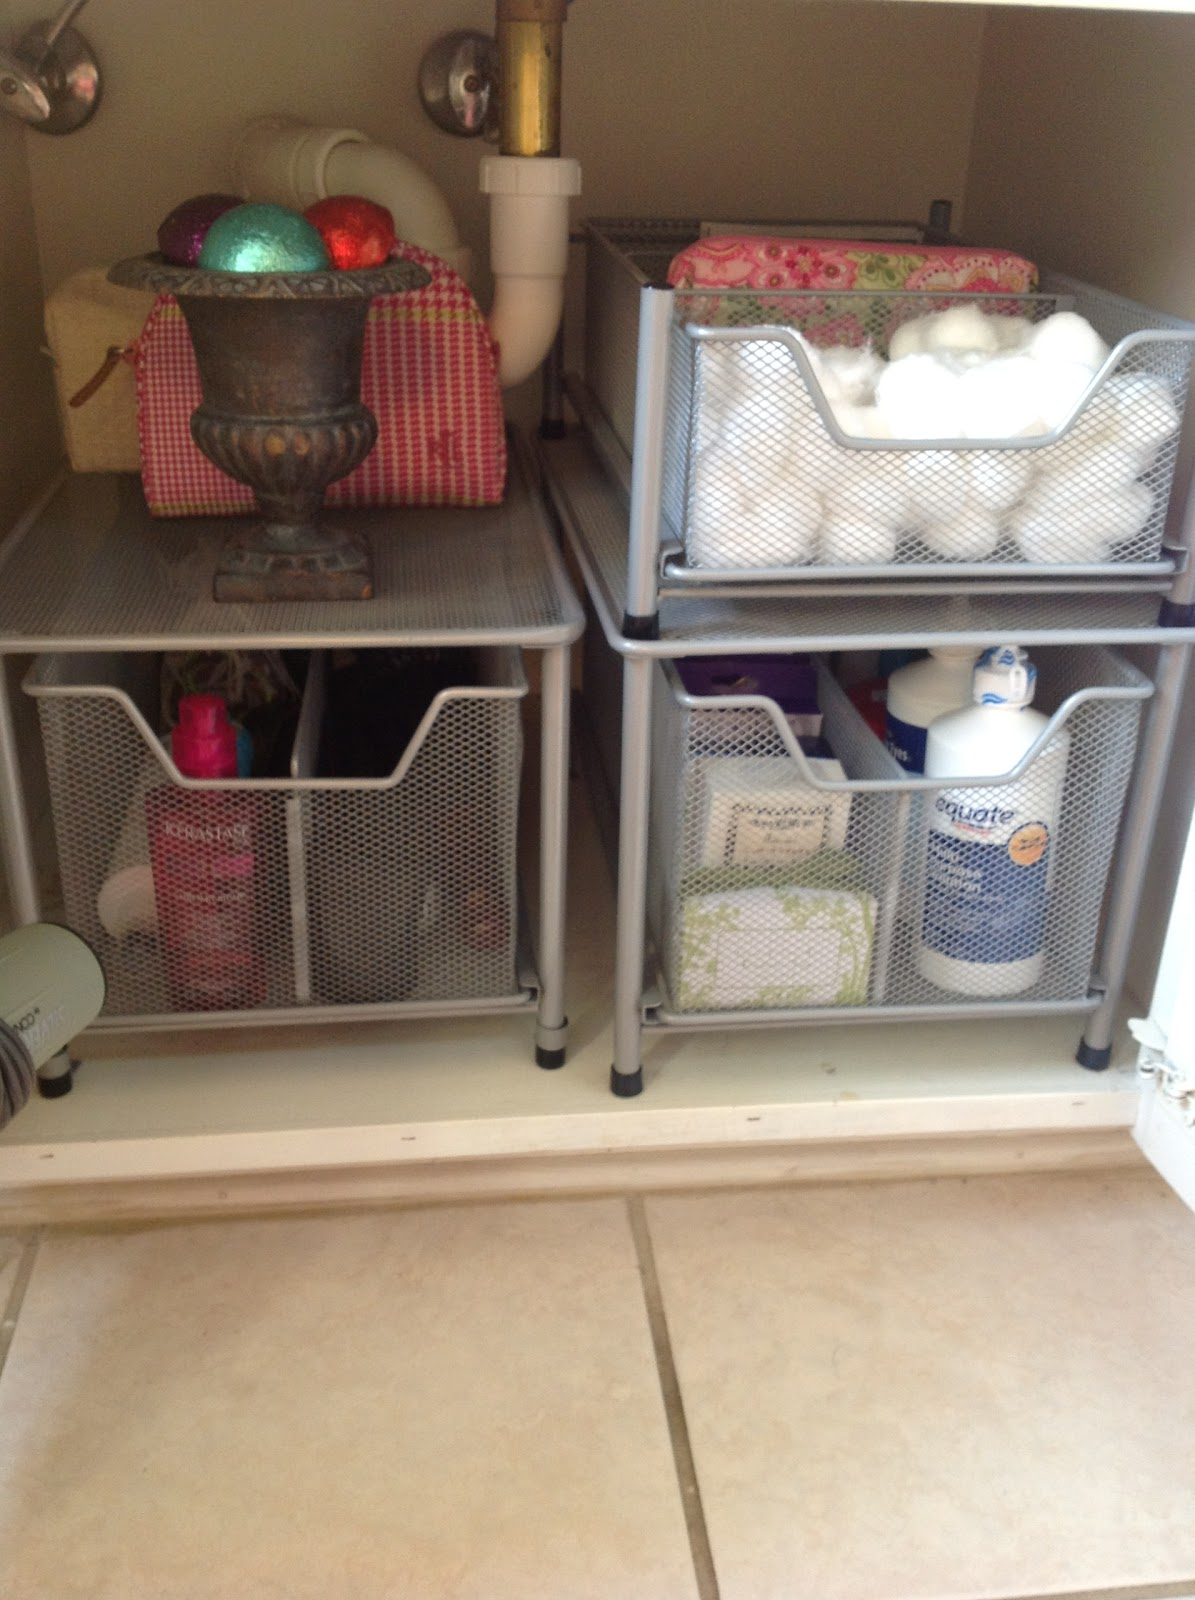 Bathroom Organization Ideas Of O Is For Organize Under The Bathroom Sink